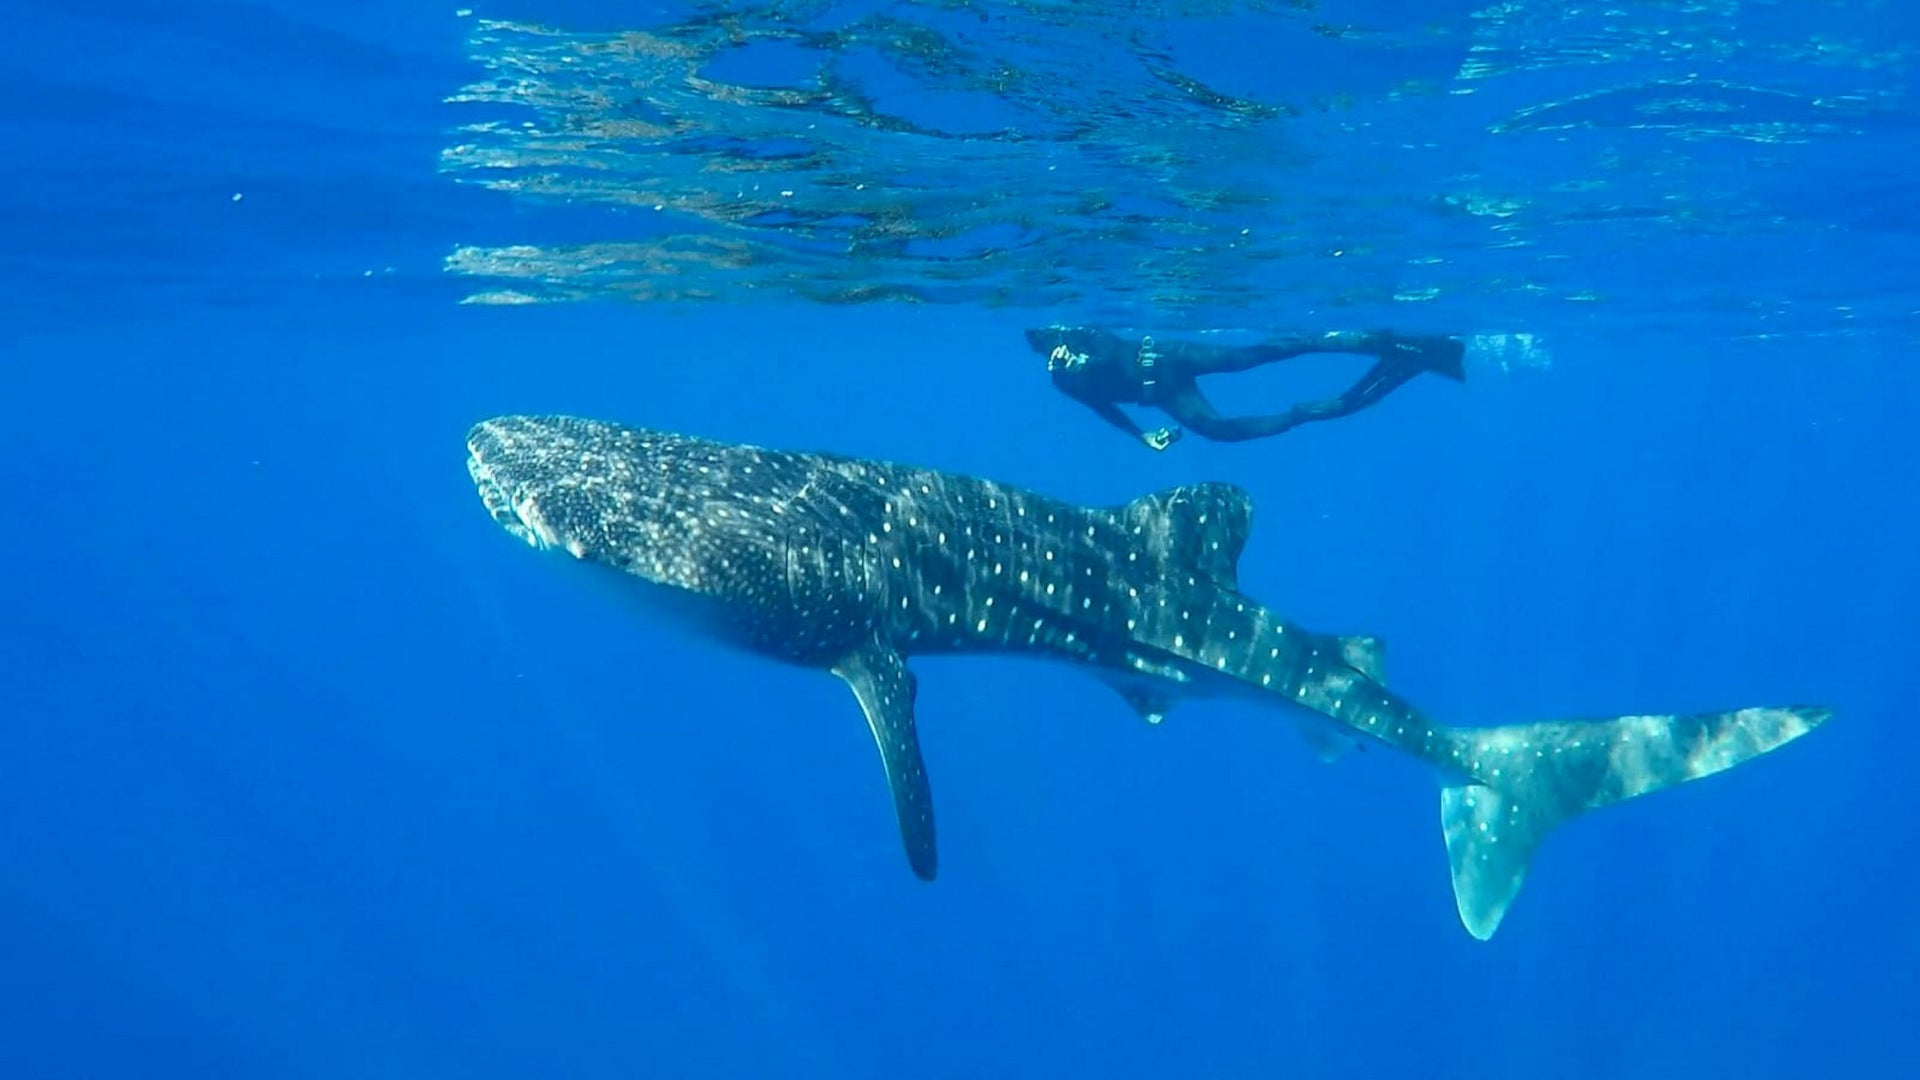 The whale shark spotted in the Gulf of Eilat, July 30, 2019.